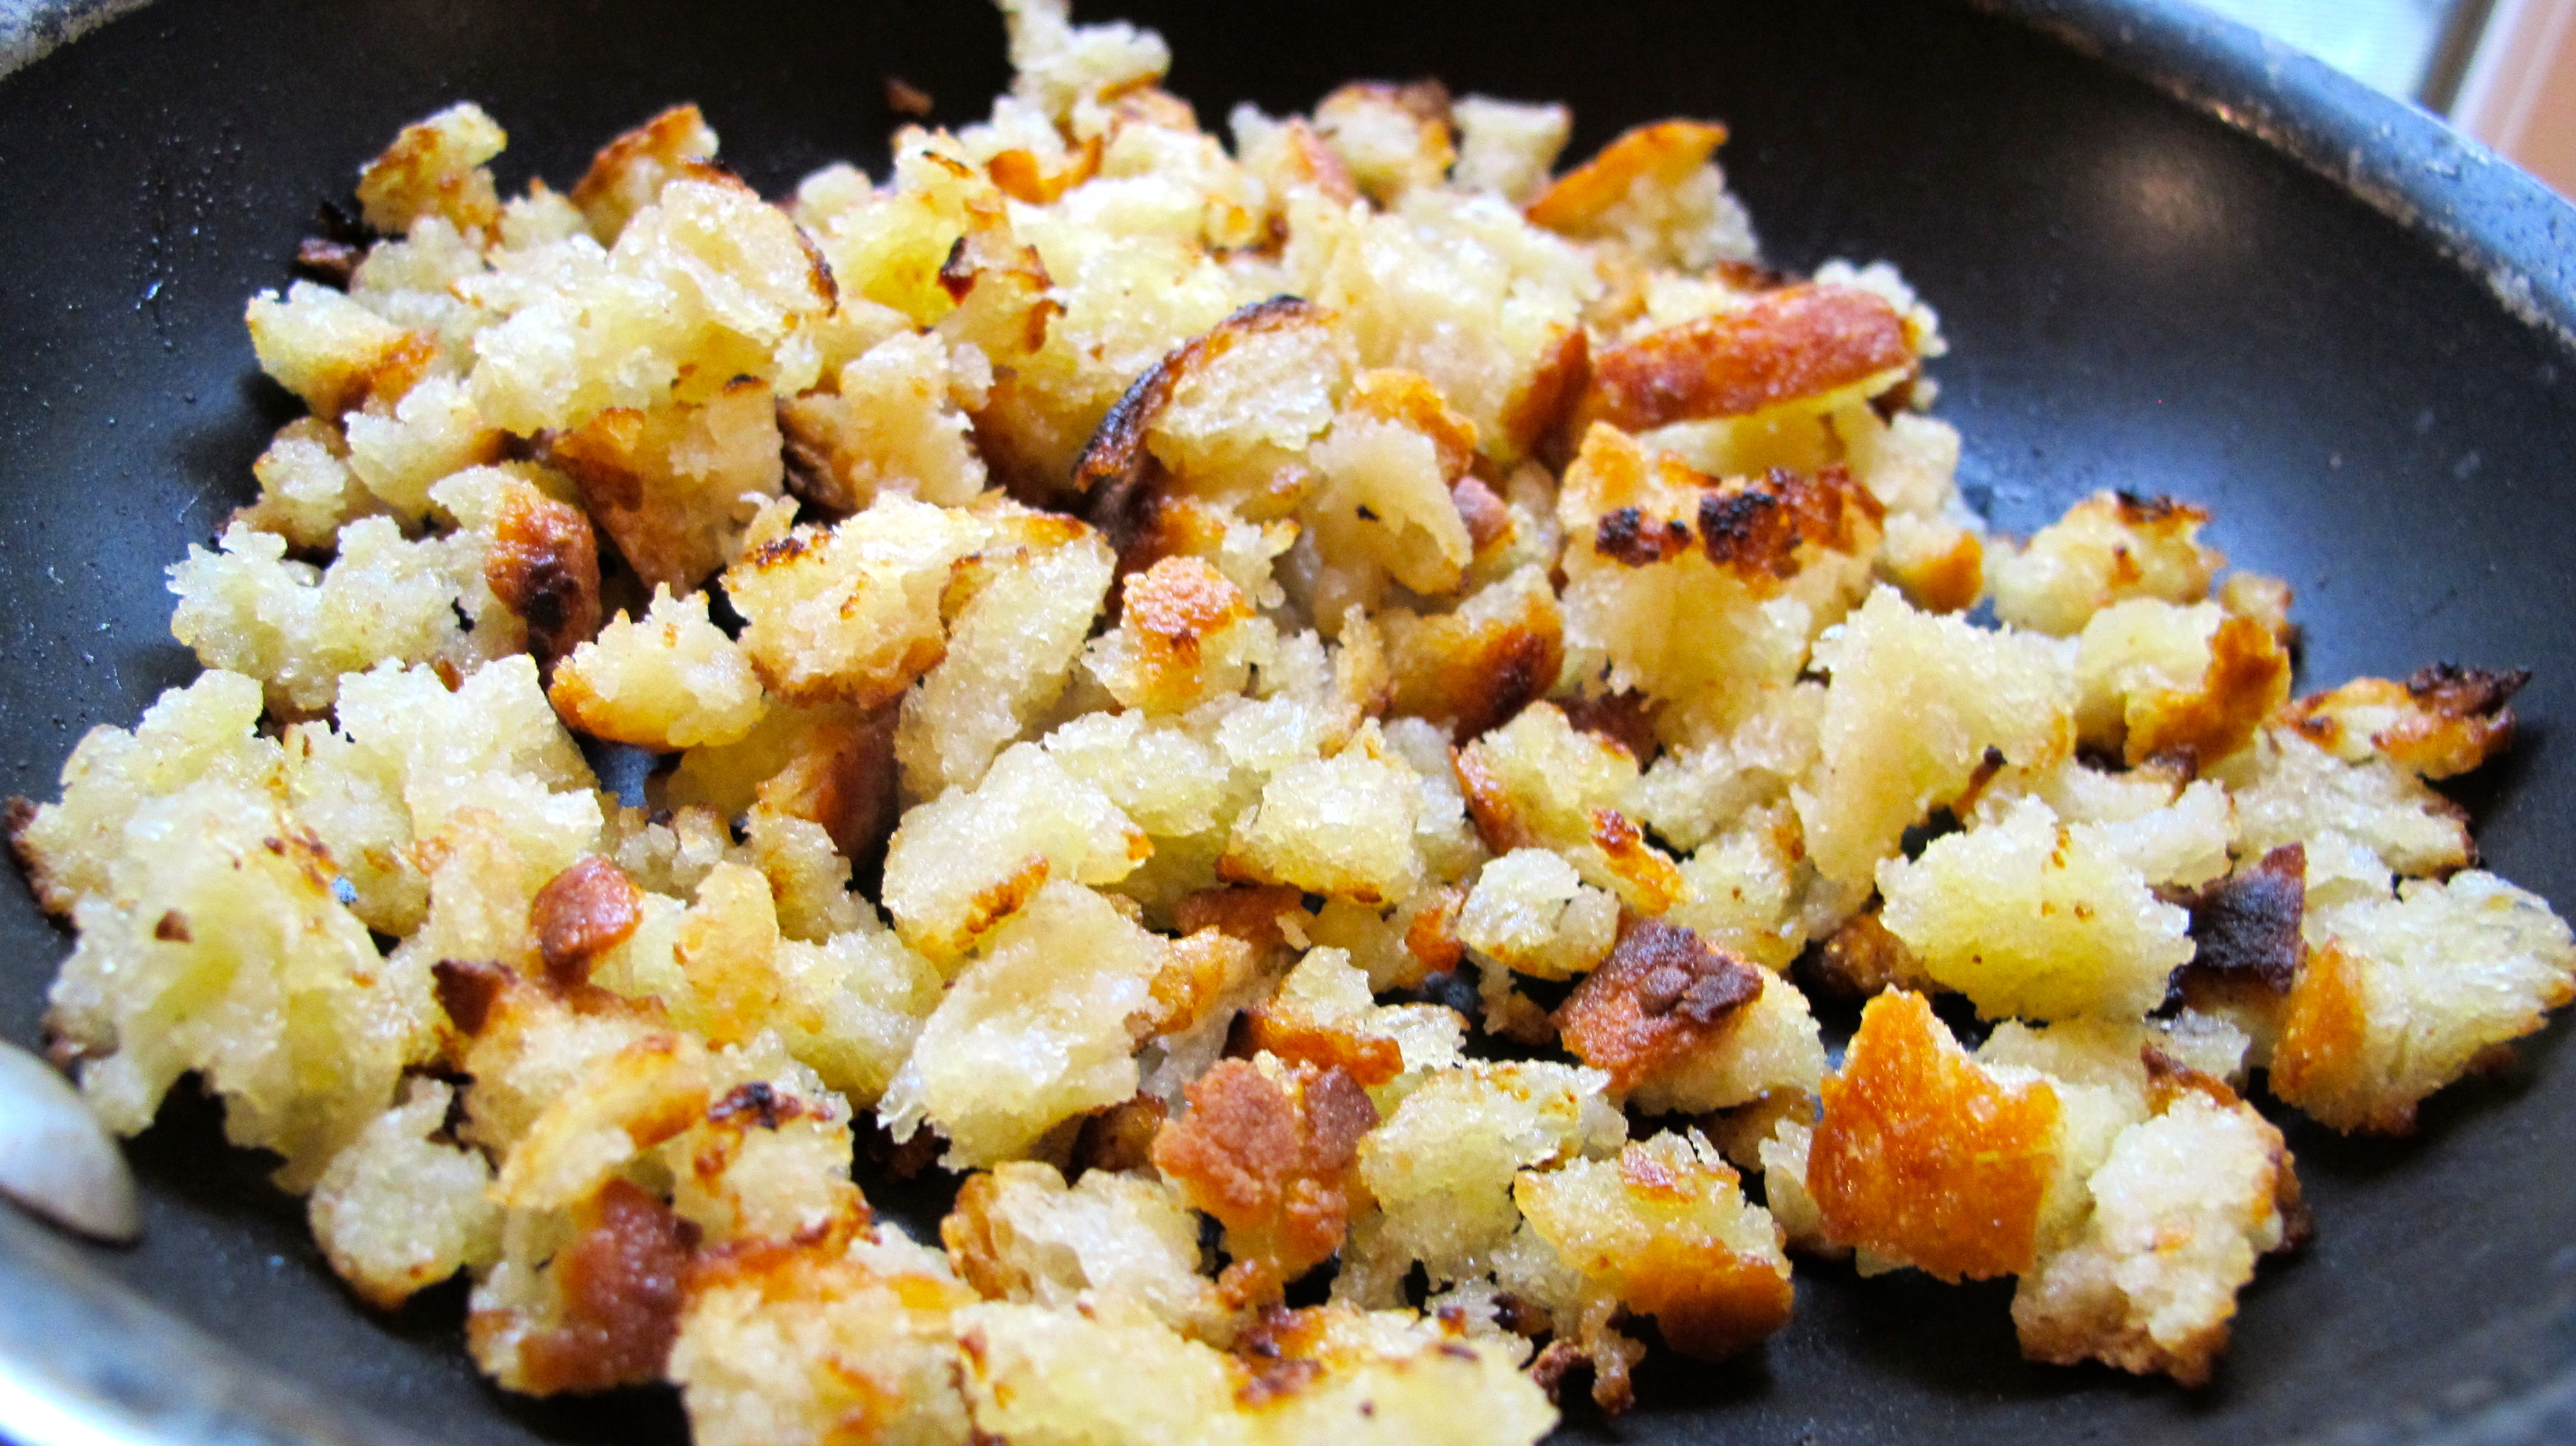 Toasted breadcrumbs made with homemade white bread.